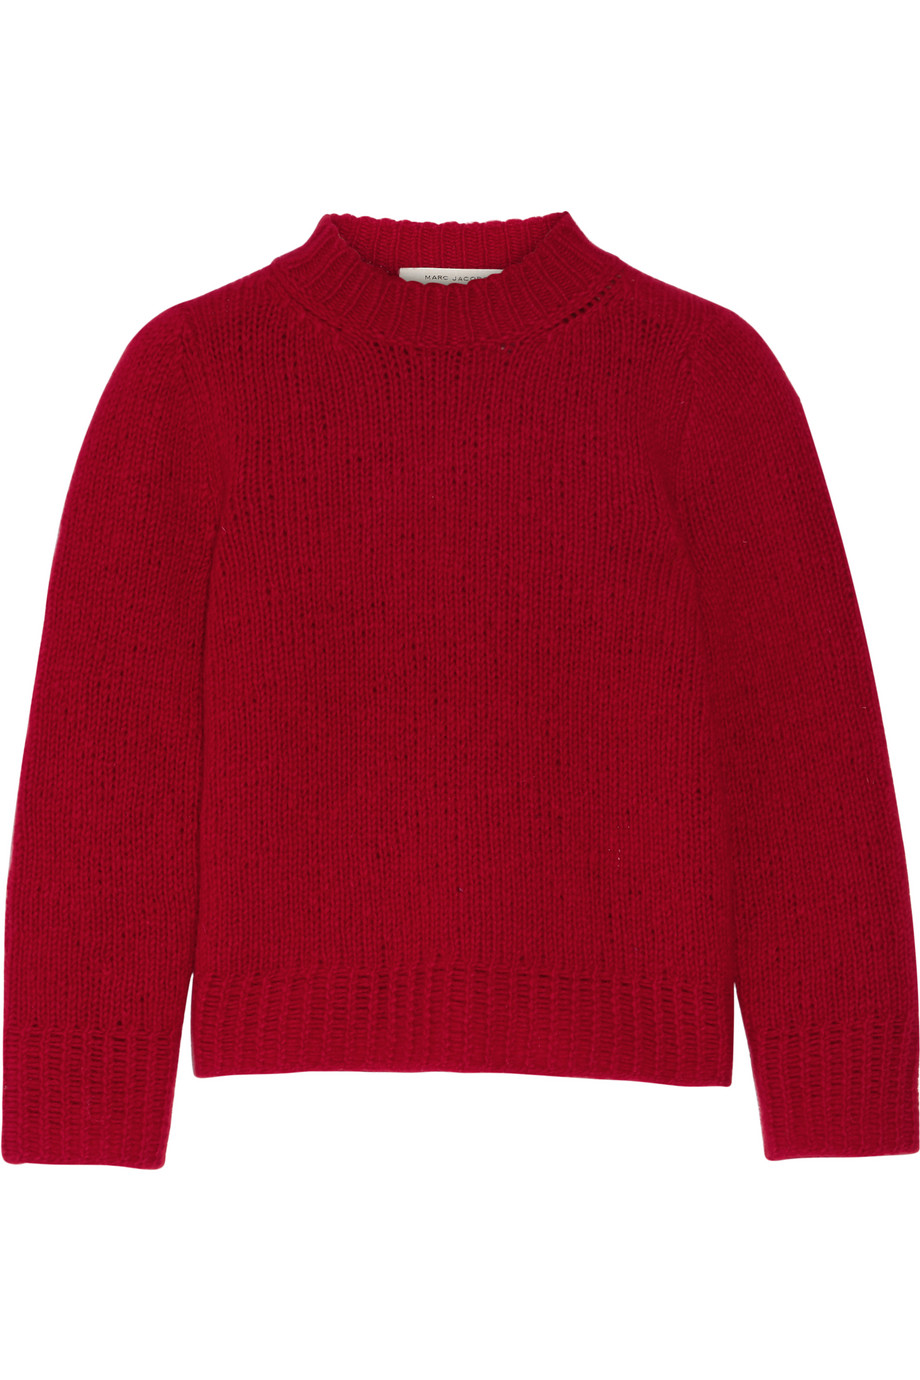 Marc Jacobs Wool and Cashmere-Blend Sweater, Red, Women's